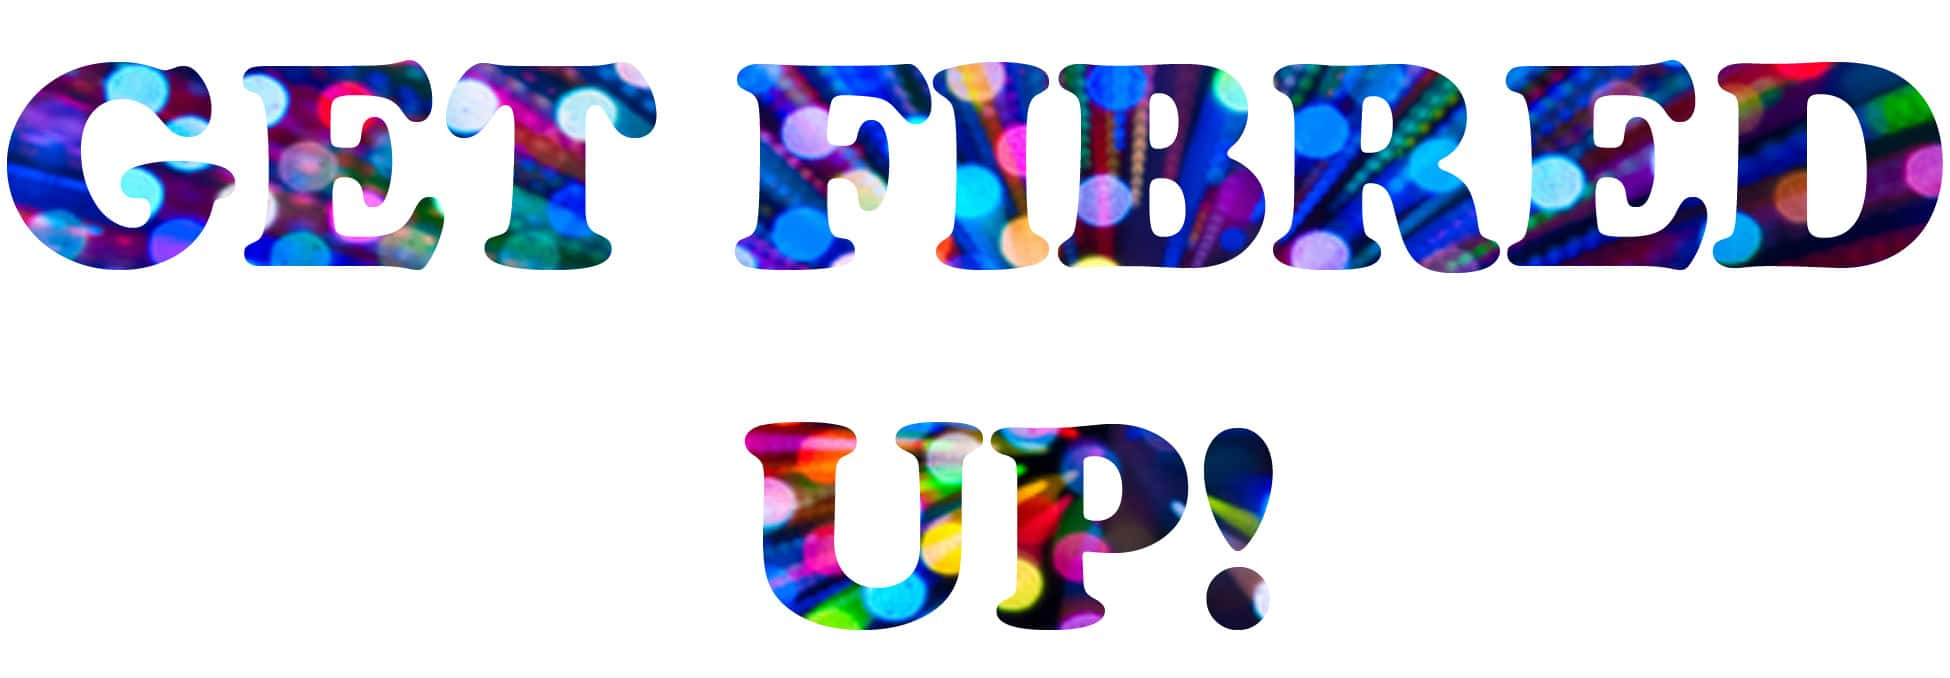 Bring your Business into 2016 with super-fast Fibre Broadband